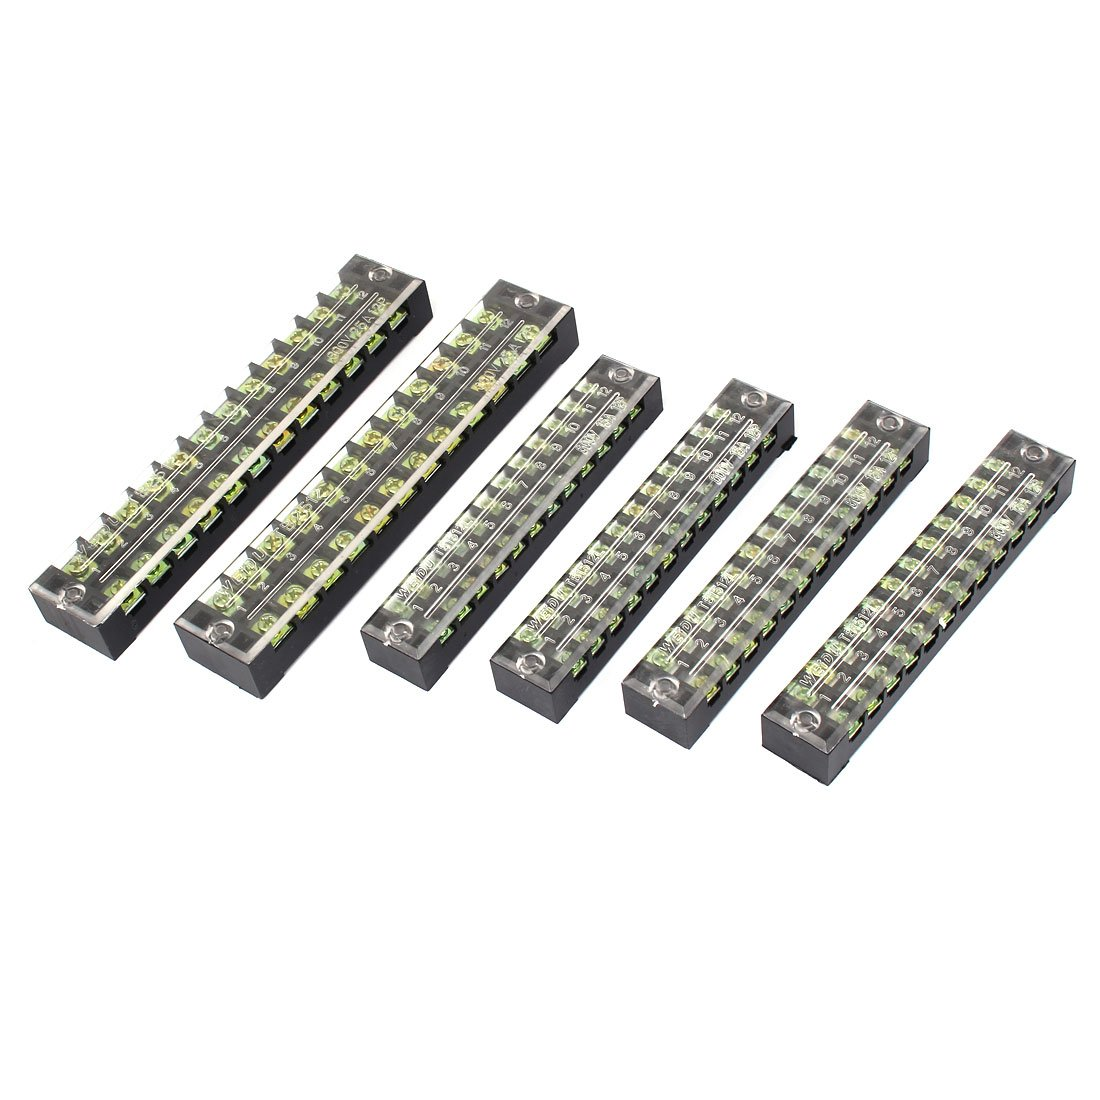 uxcell TB1512L TB2512 Double Row 12 Position Barrier Terminal Block 6pcs by uxcell